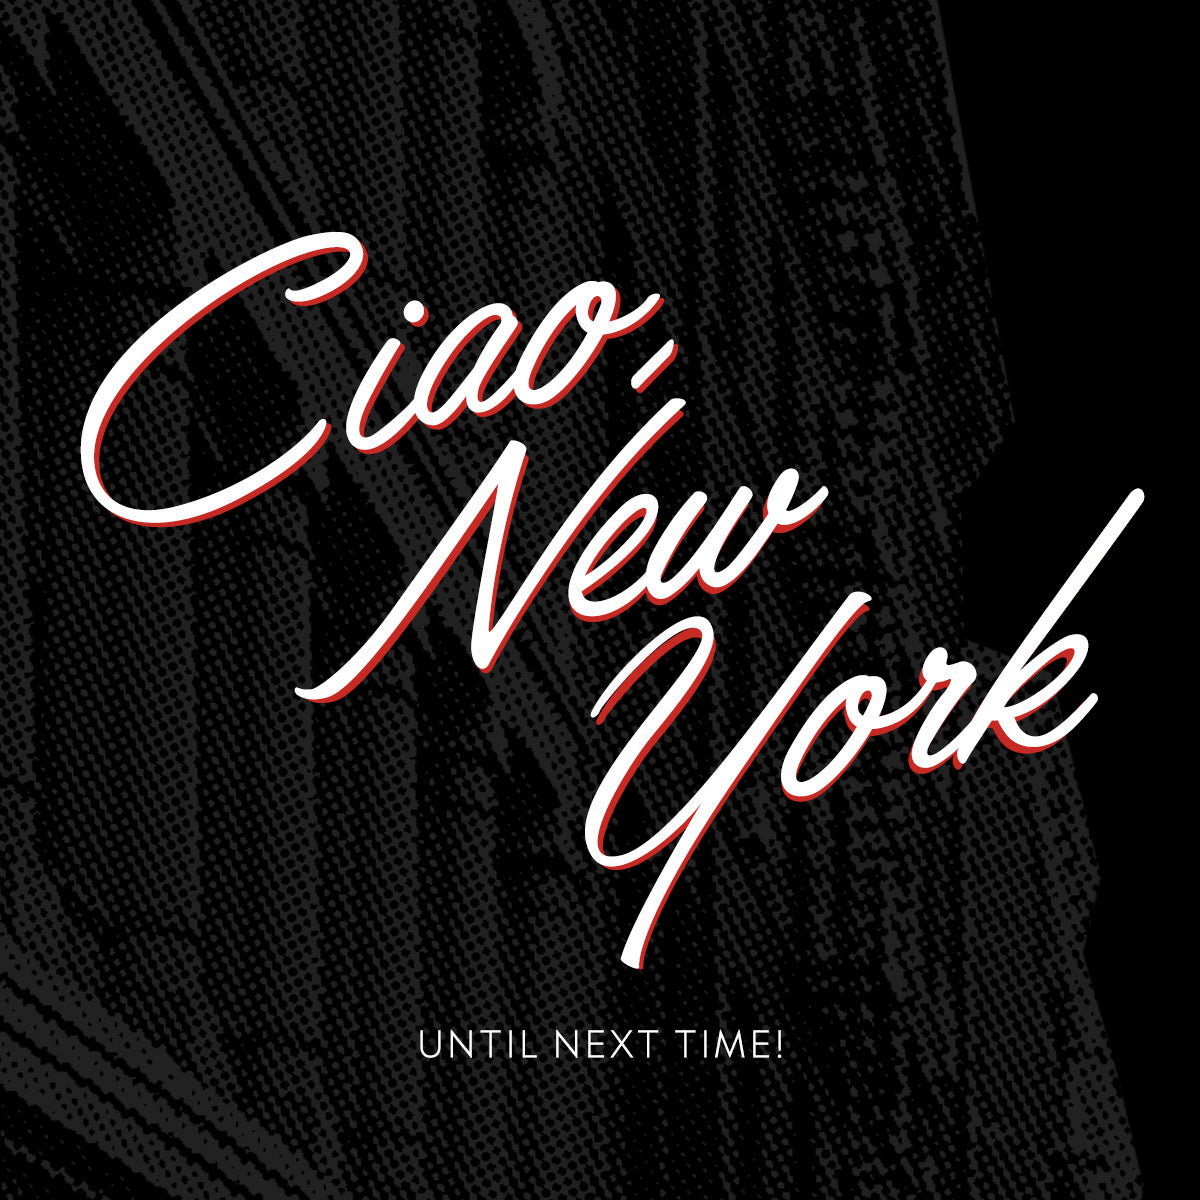 Ciao, New York